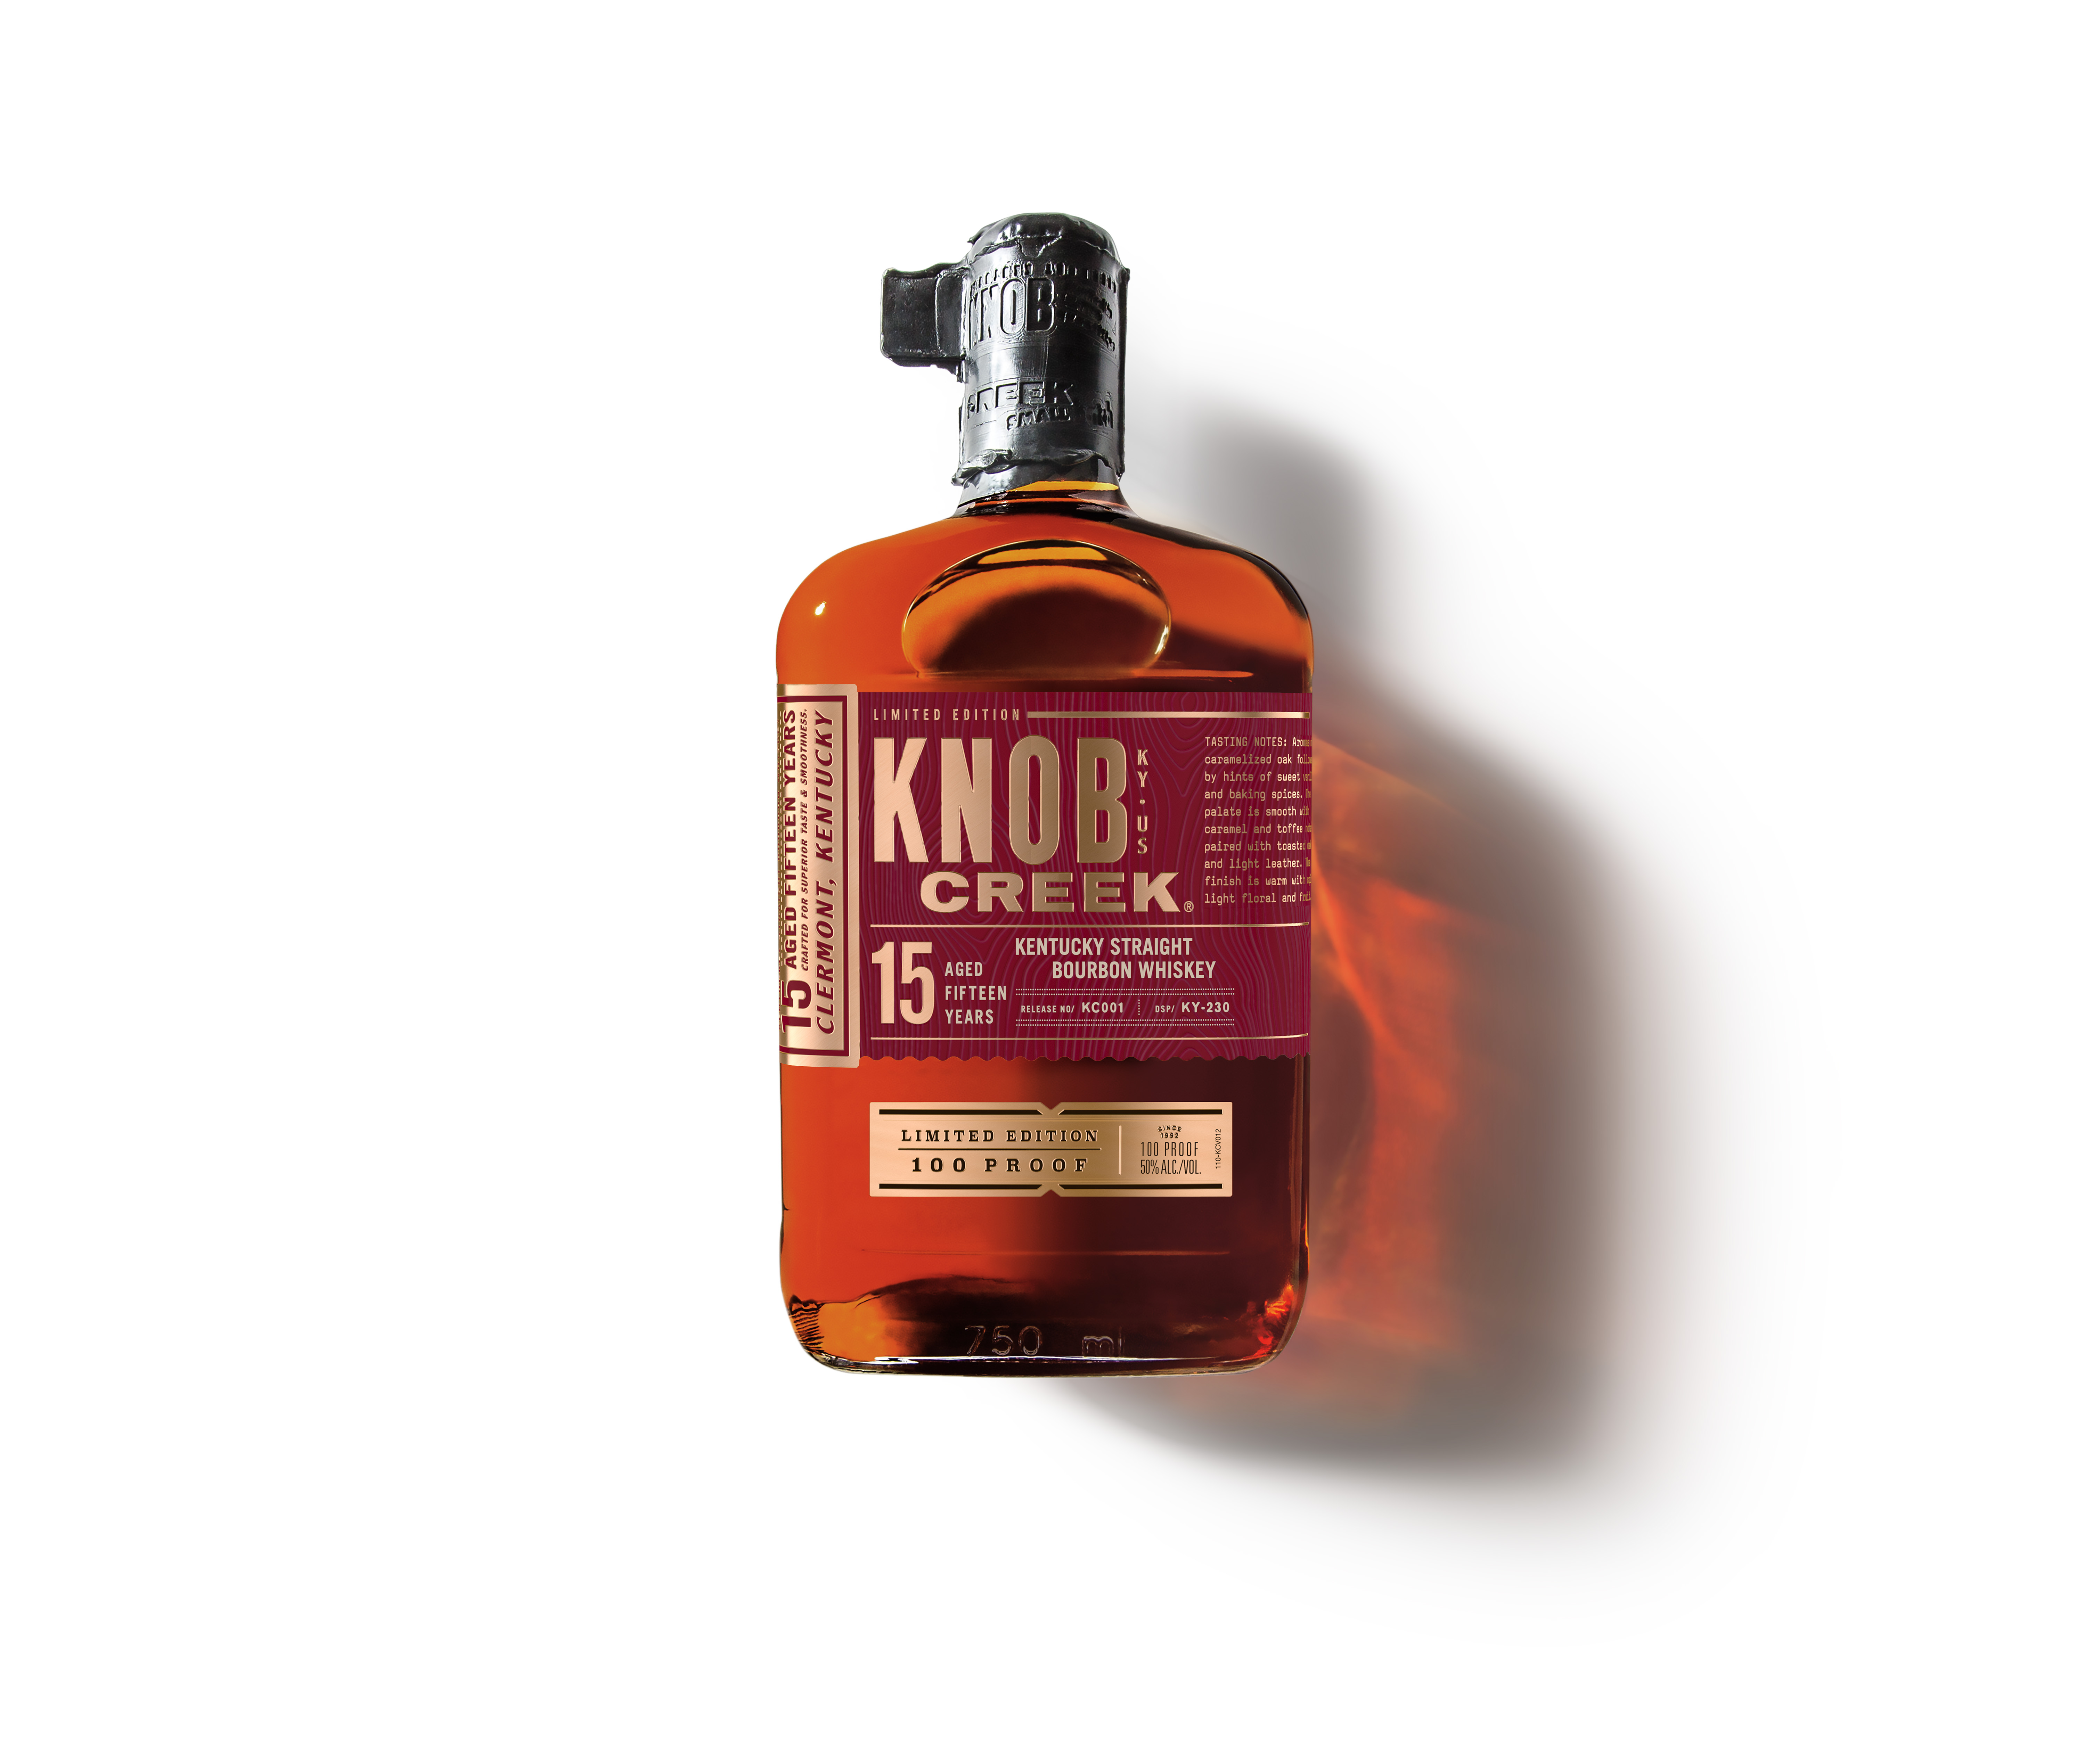 Knob Creek Releases 15 Year Old Bourbon